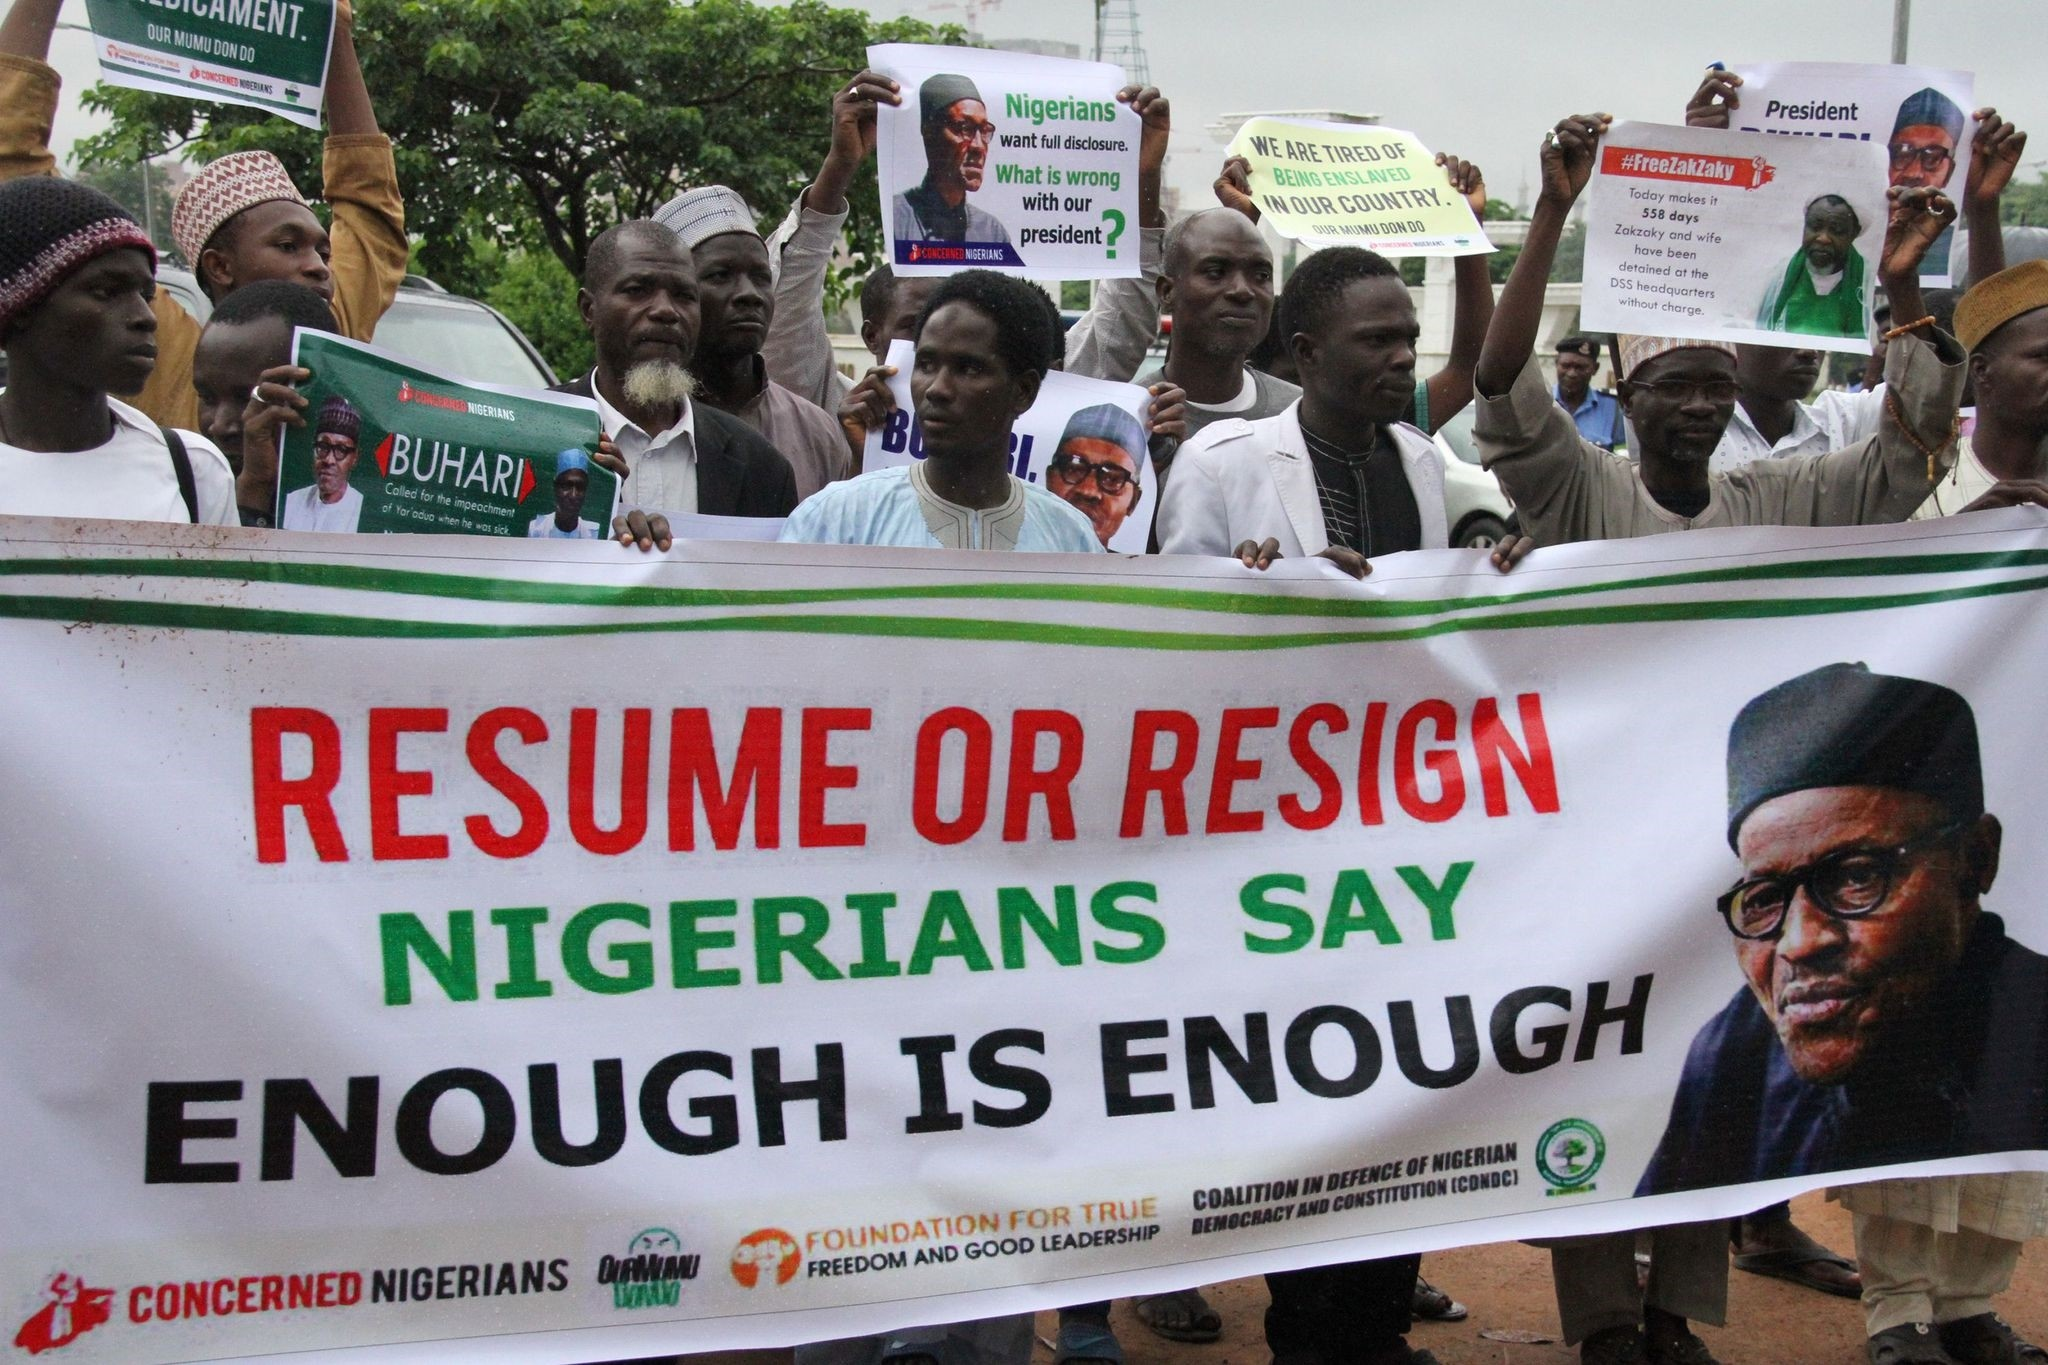 Protesters carry placards to demand that ailing President Buhari resume work or resign in Abuja, on August 7, 2017. (AFP Photo)